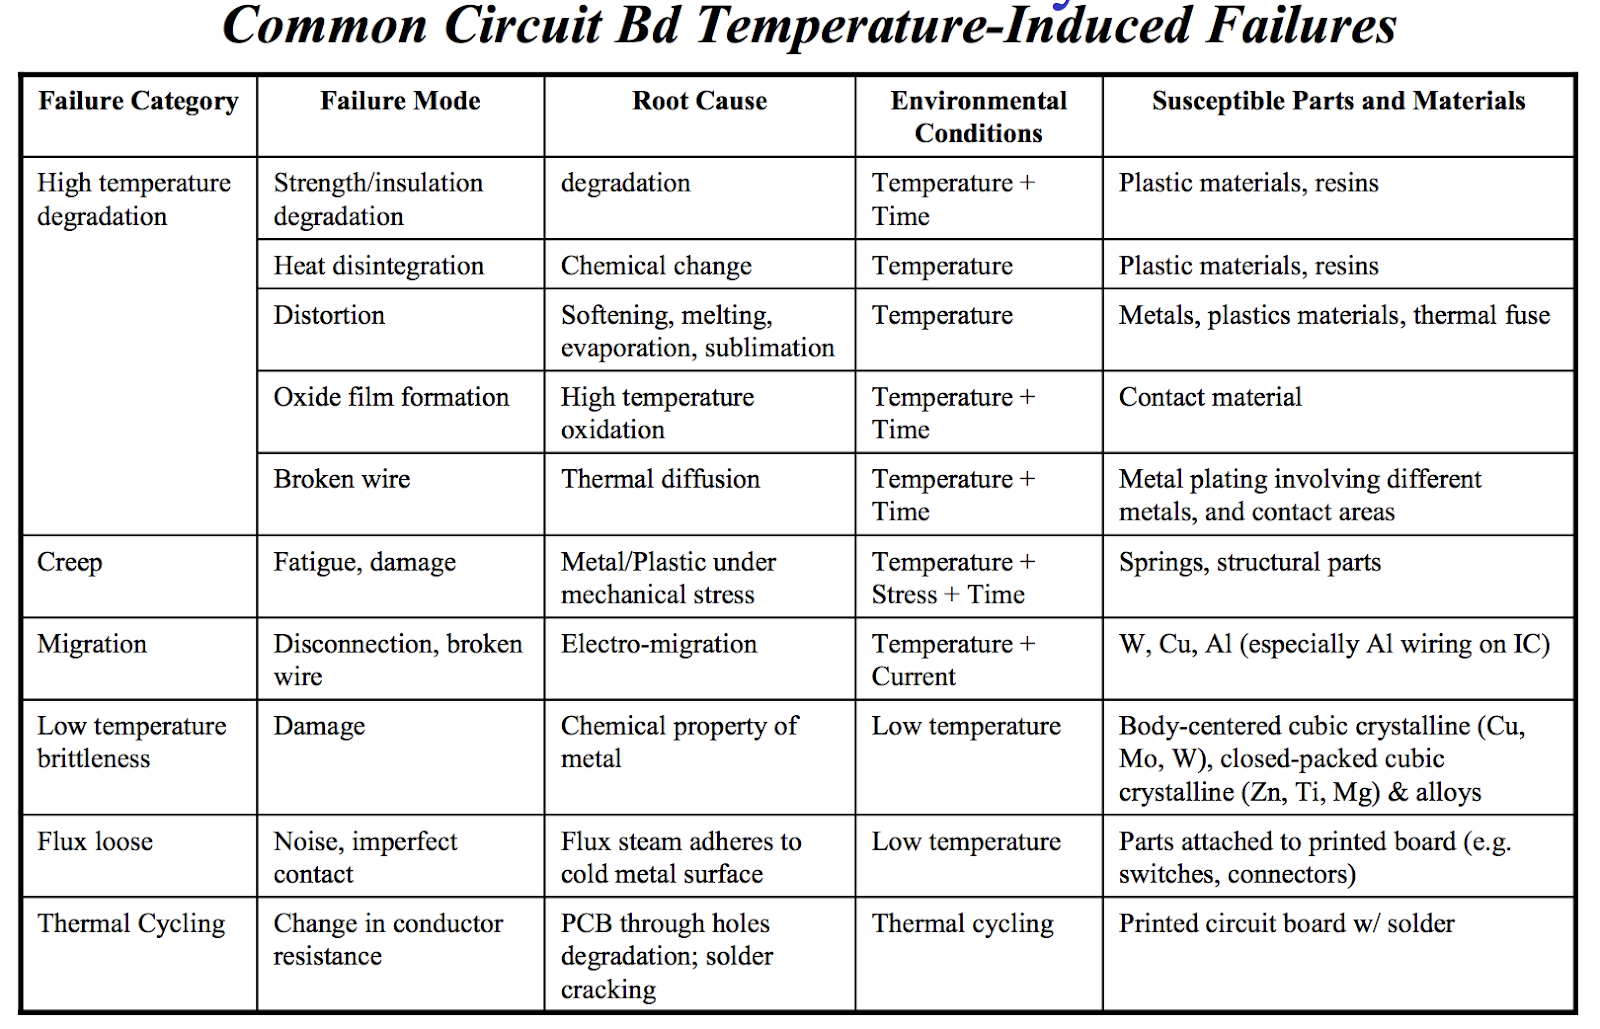 common circuit Bd temperature failures